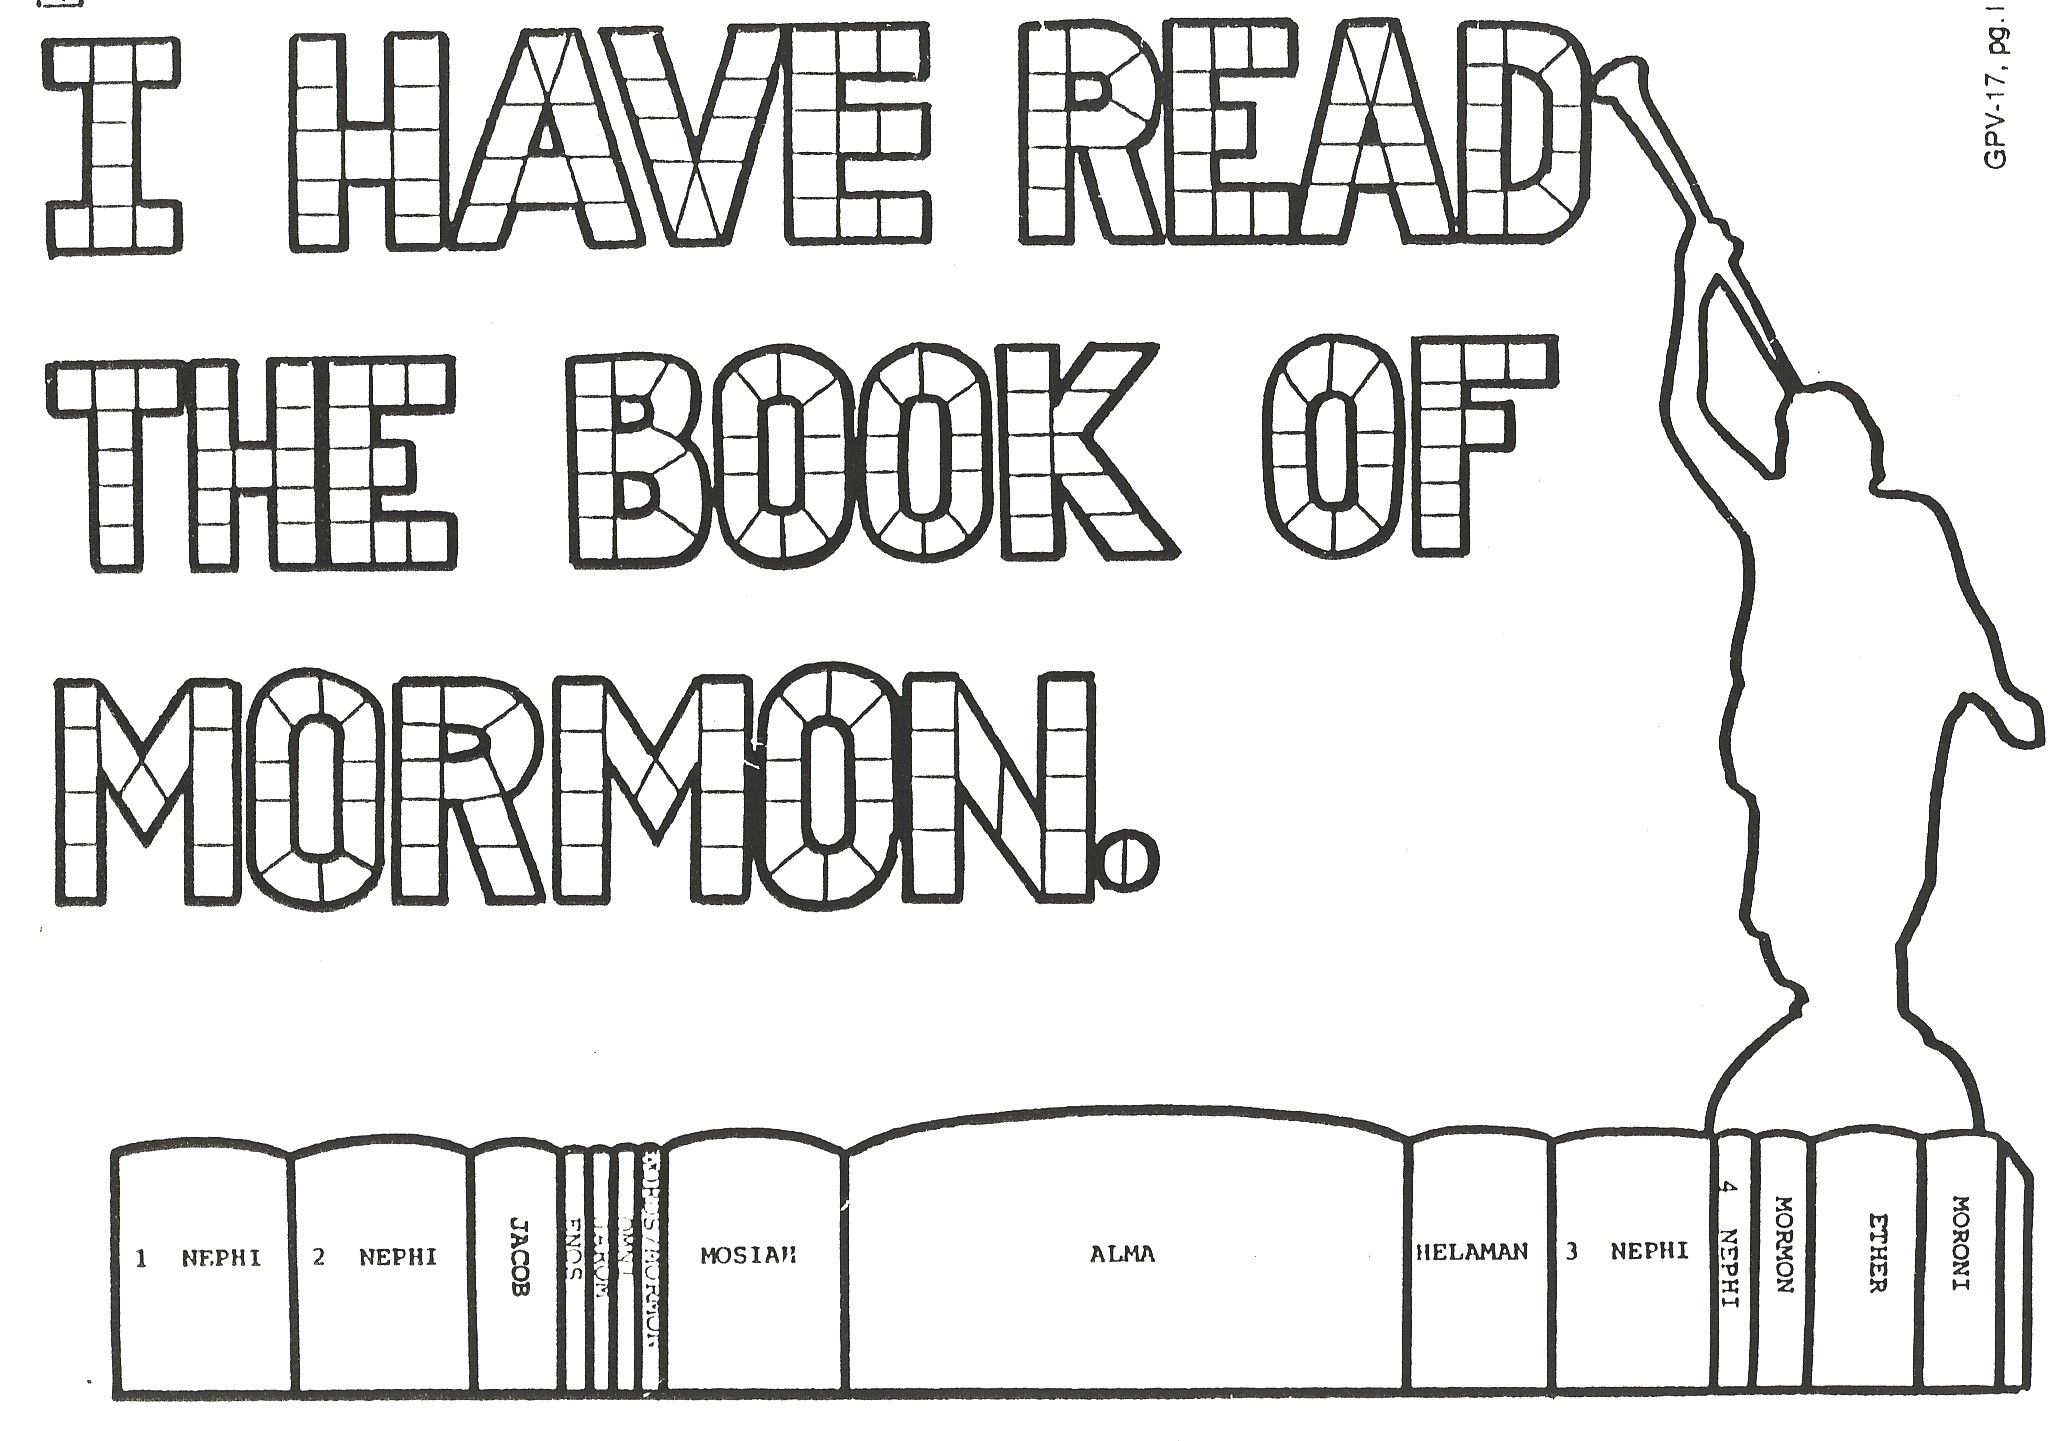 Book of Mormon Study Guide! Here is the coloring chart